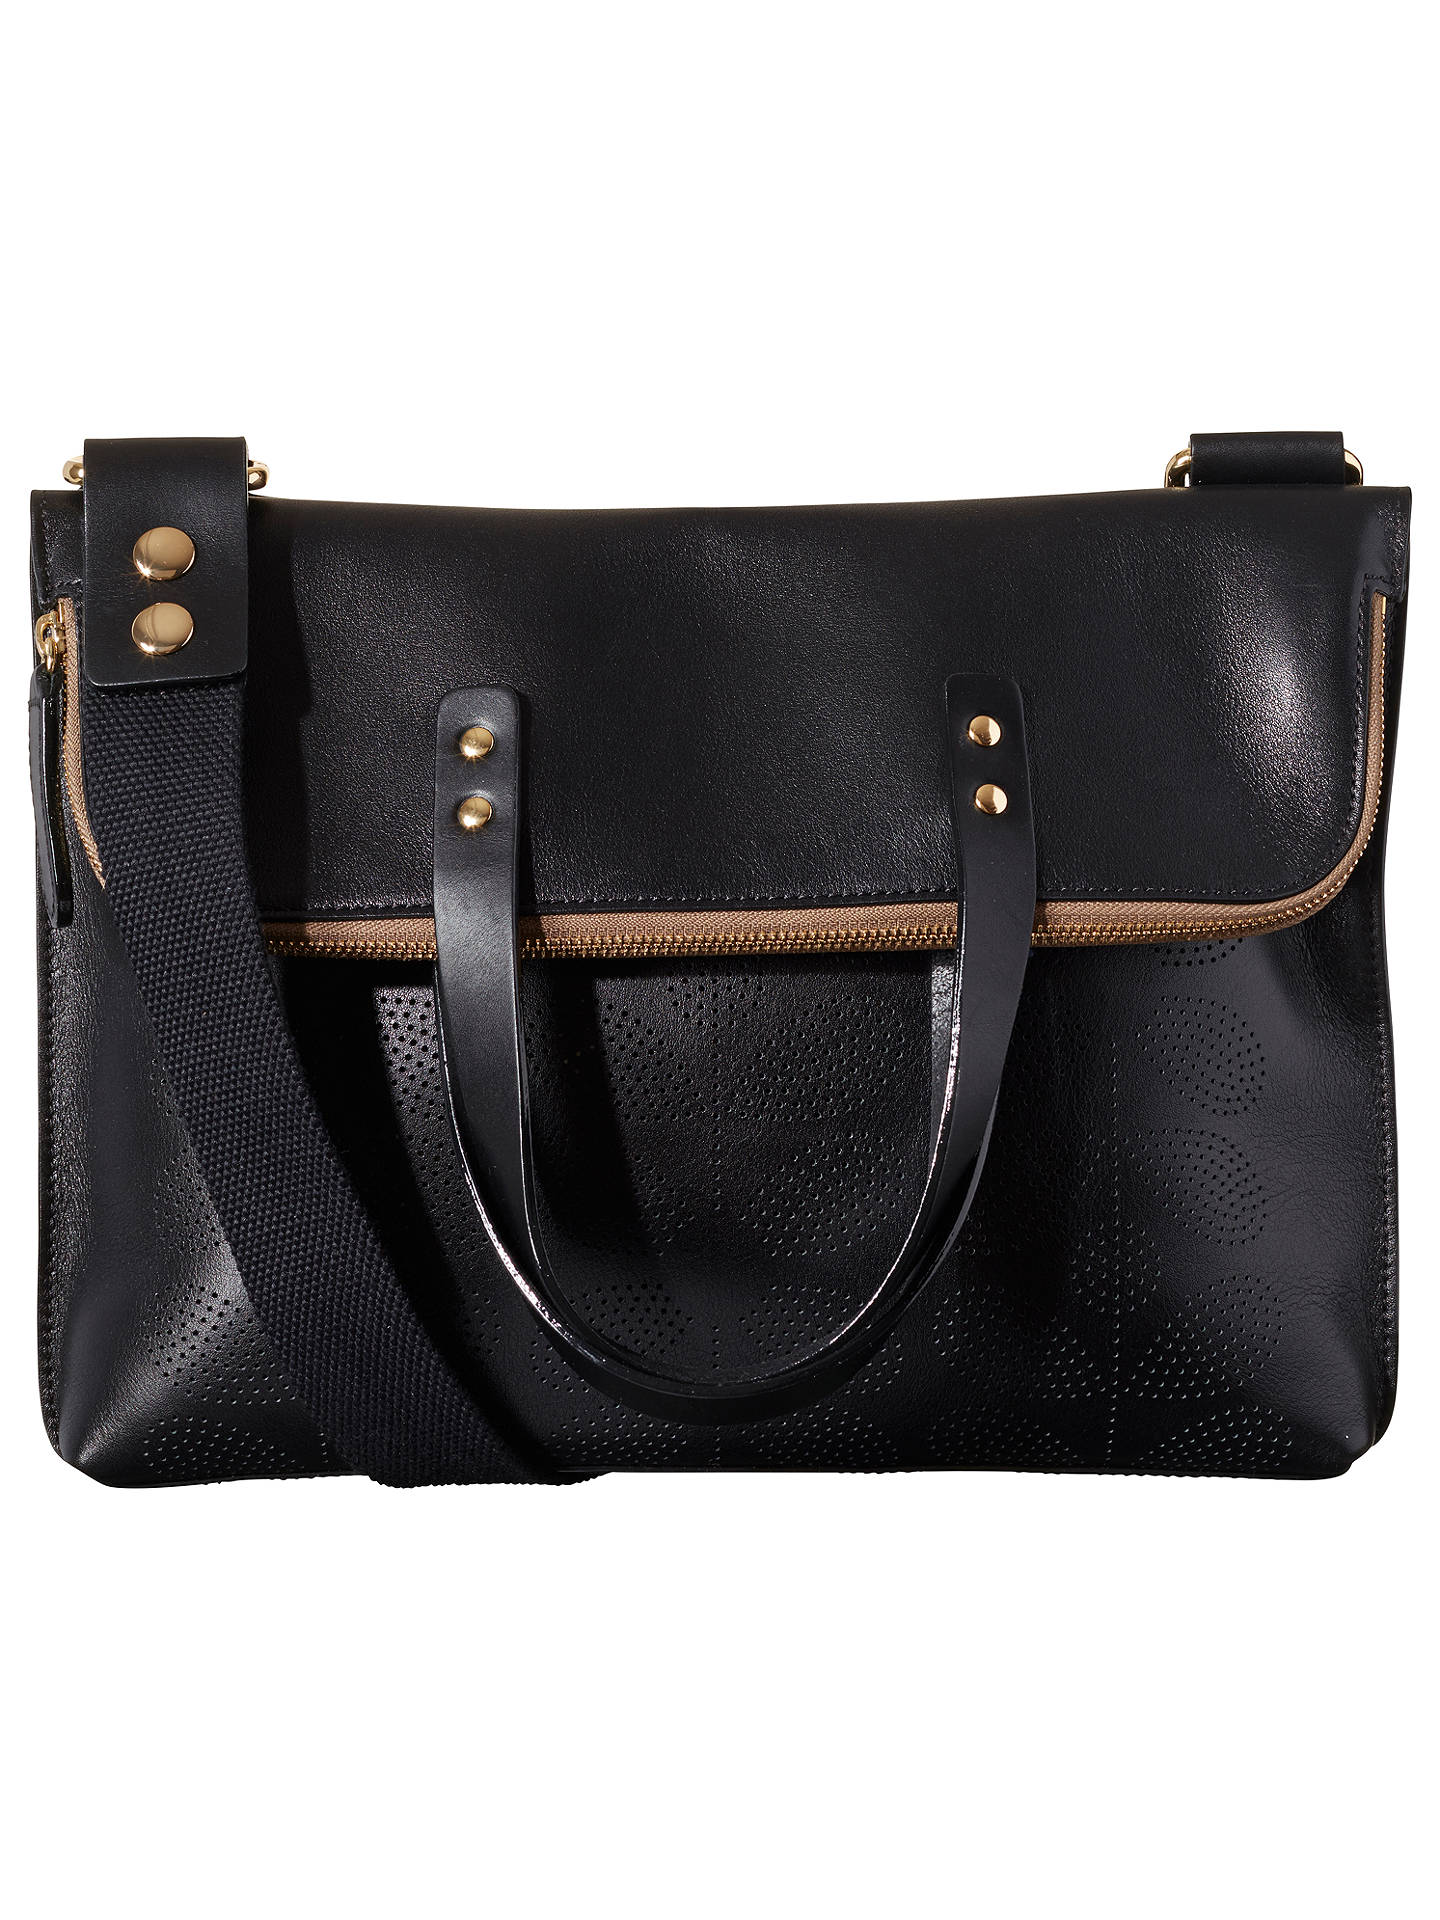 Orla Kiely Sixties Stem Punched Leather Juniper Bag Black Online At Johnlewis